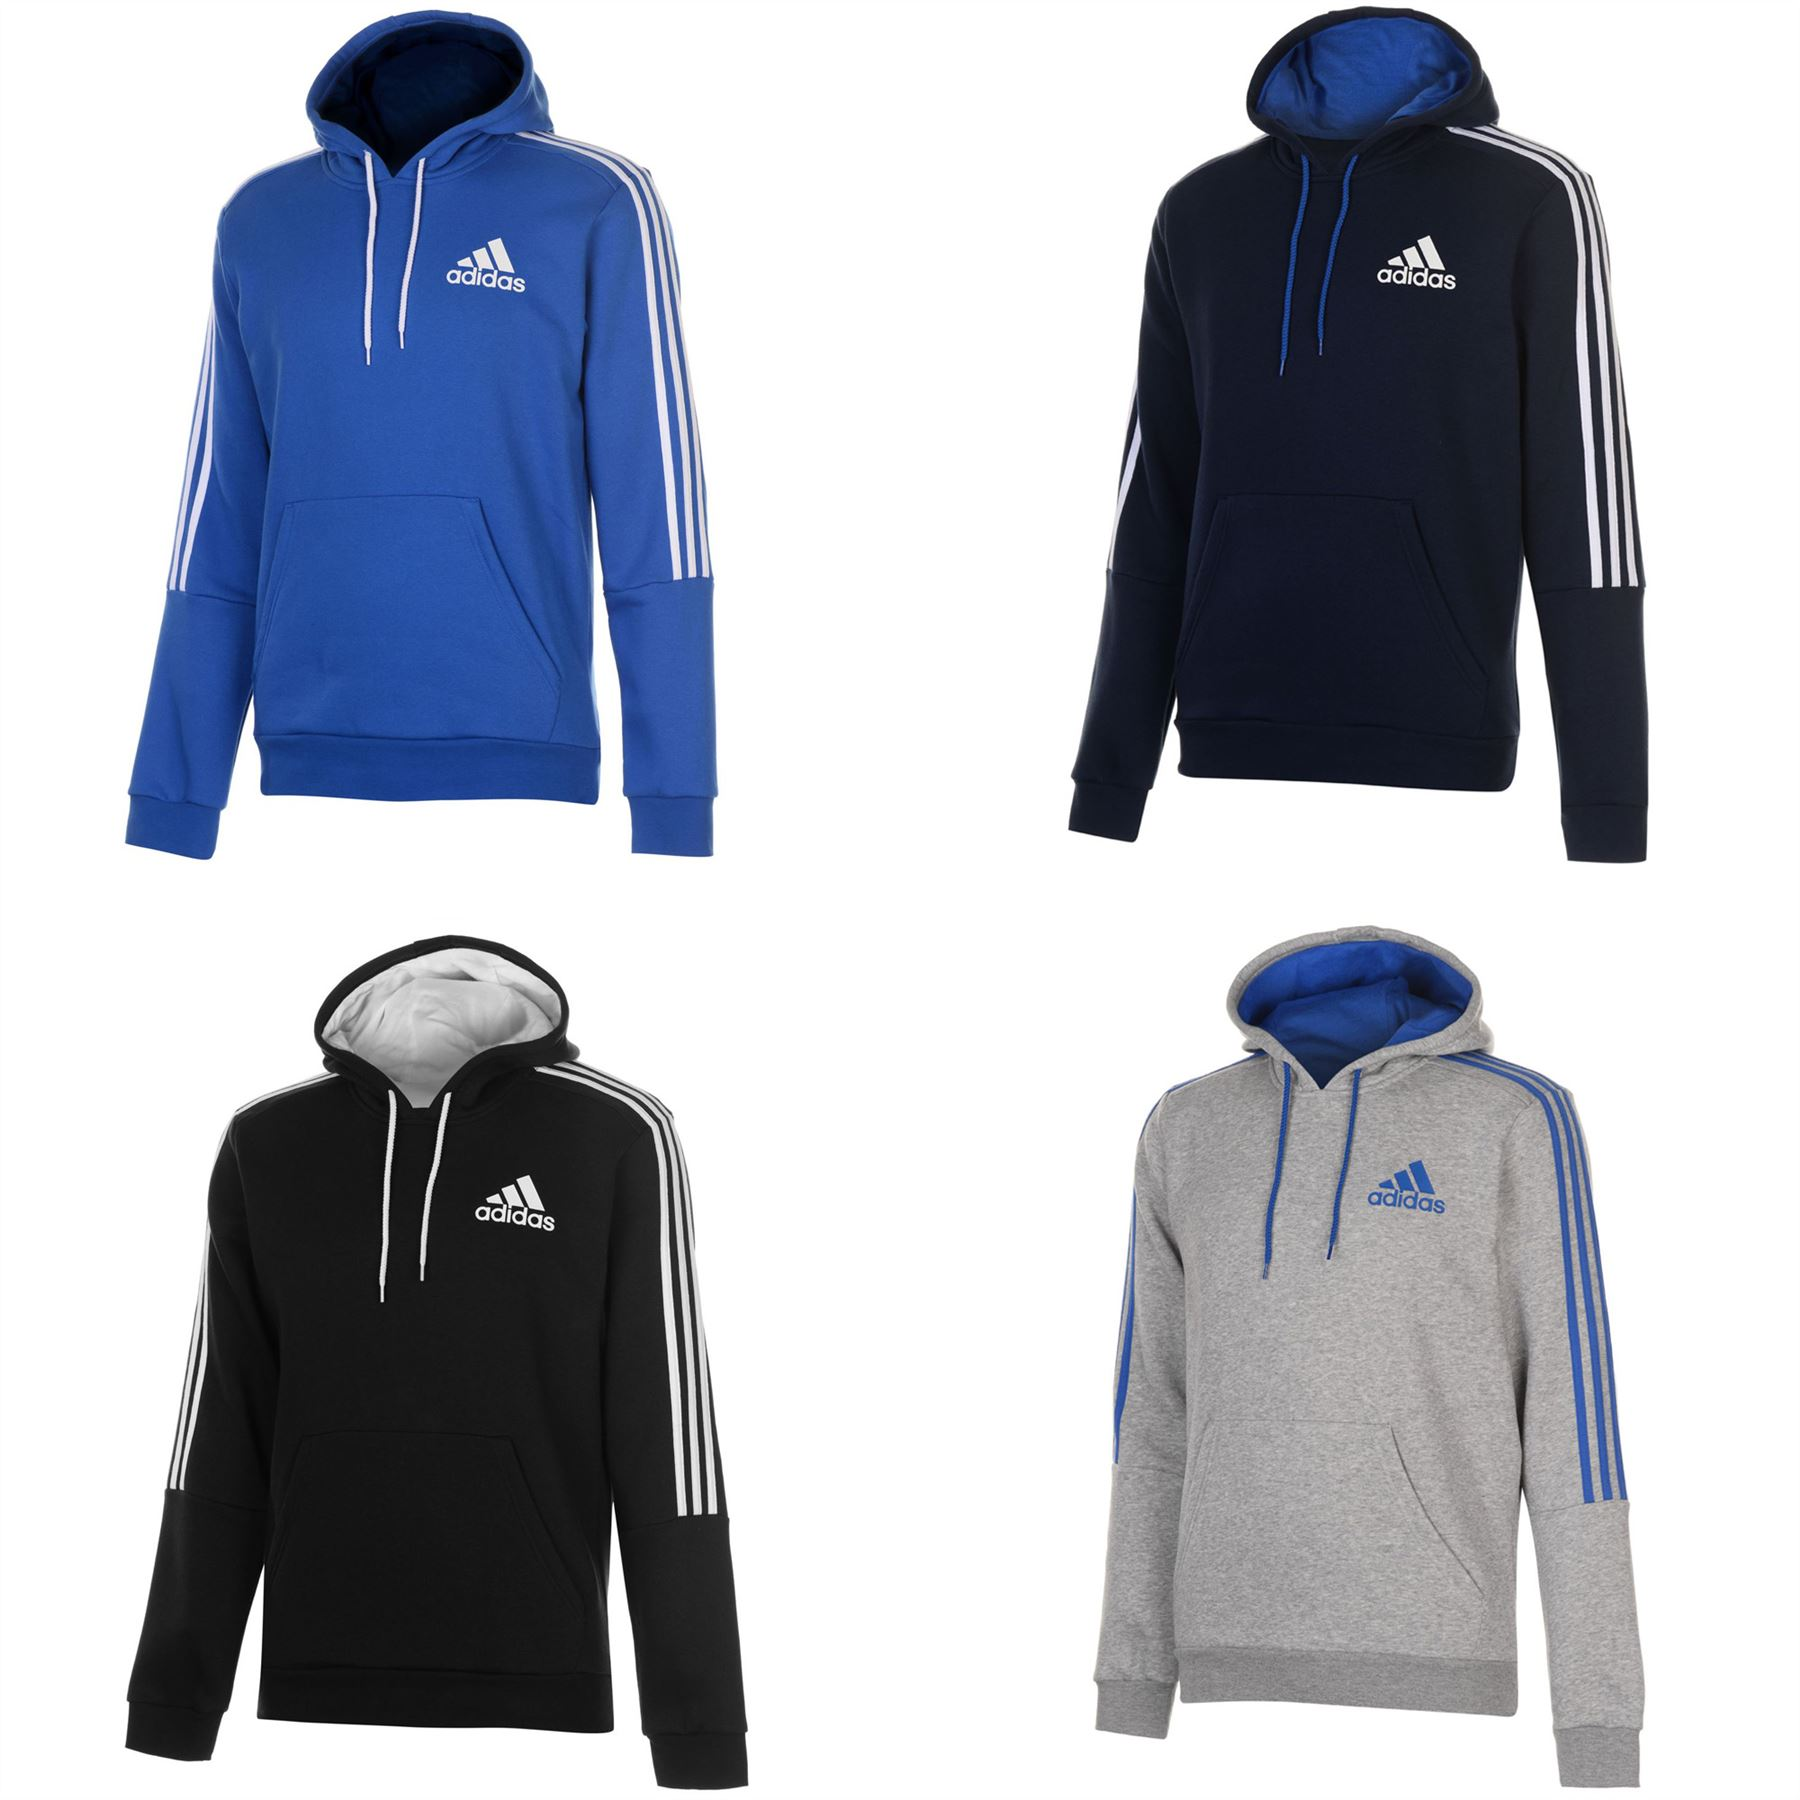 Details about adidas 3 Stripes Logo Pullover Hoody Mens Hoodie Sweatshirt  Sweater Hooded Top